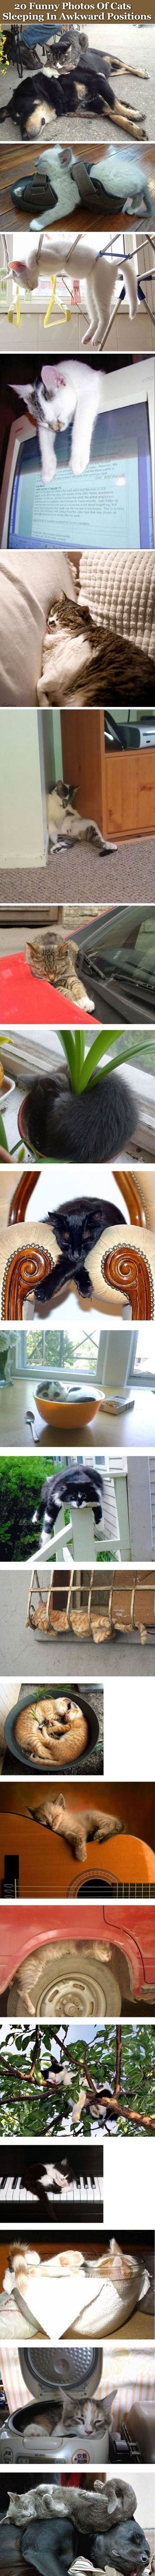 20 Funny Photos Of Cats Sleeping In Awkward Positions cute animals cat cats adorable animal kittens pets kitten funny pictures funny animals funny cats: